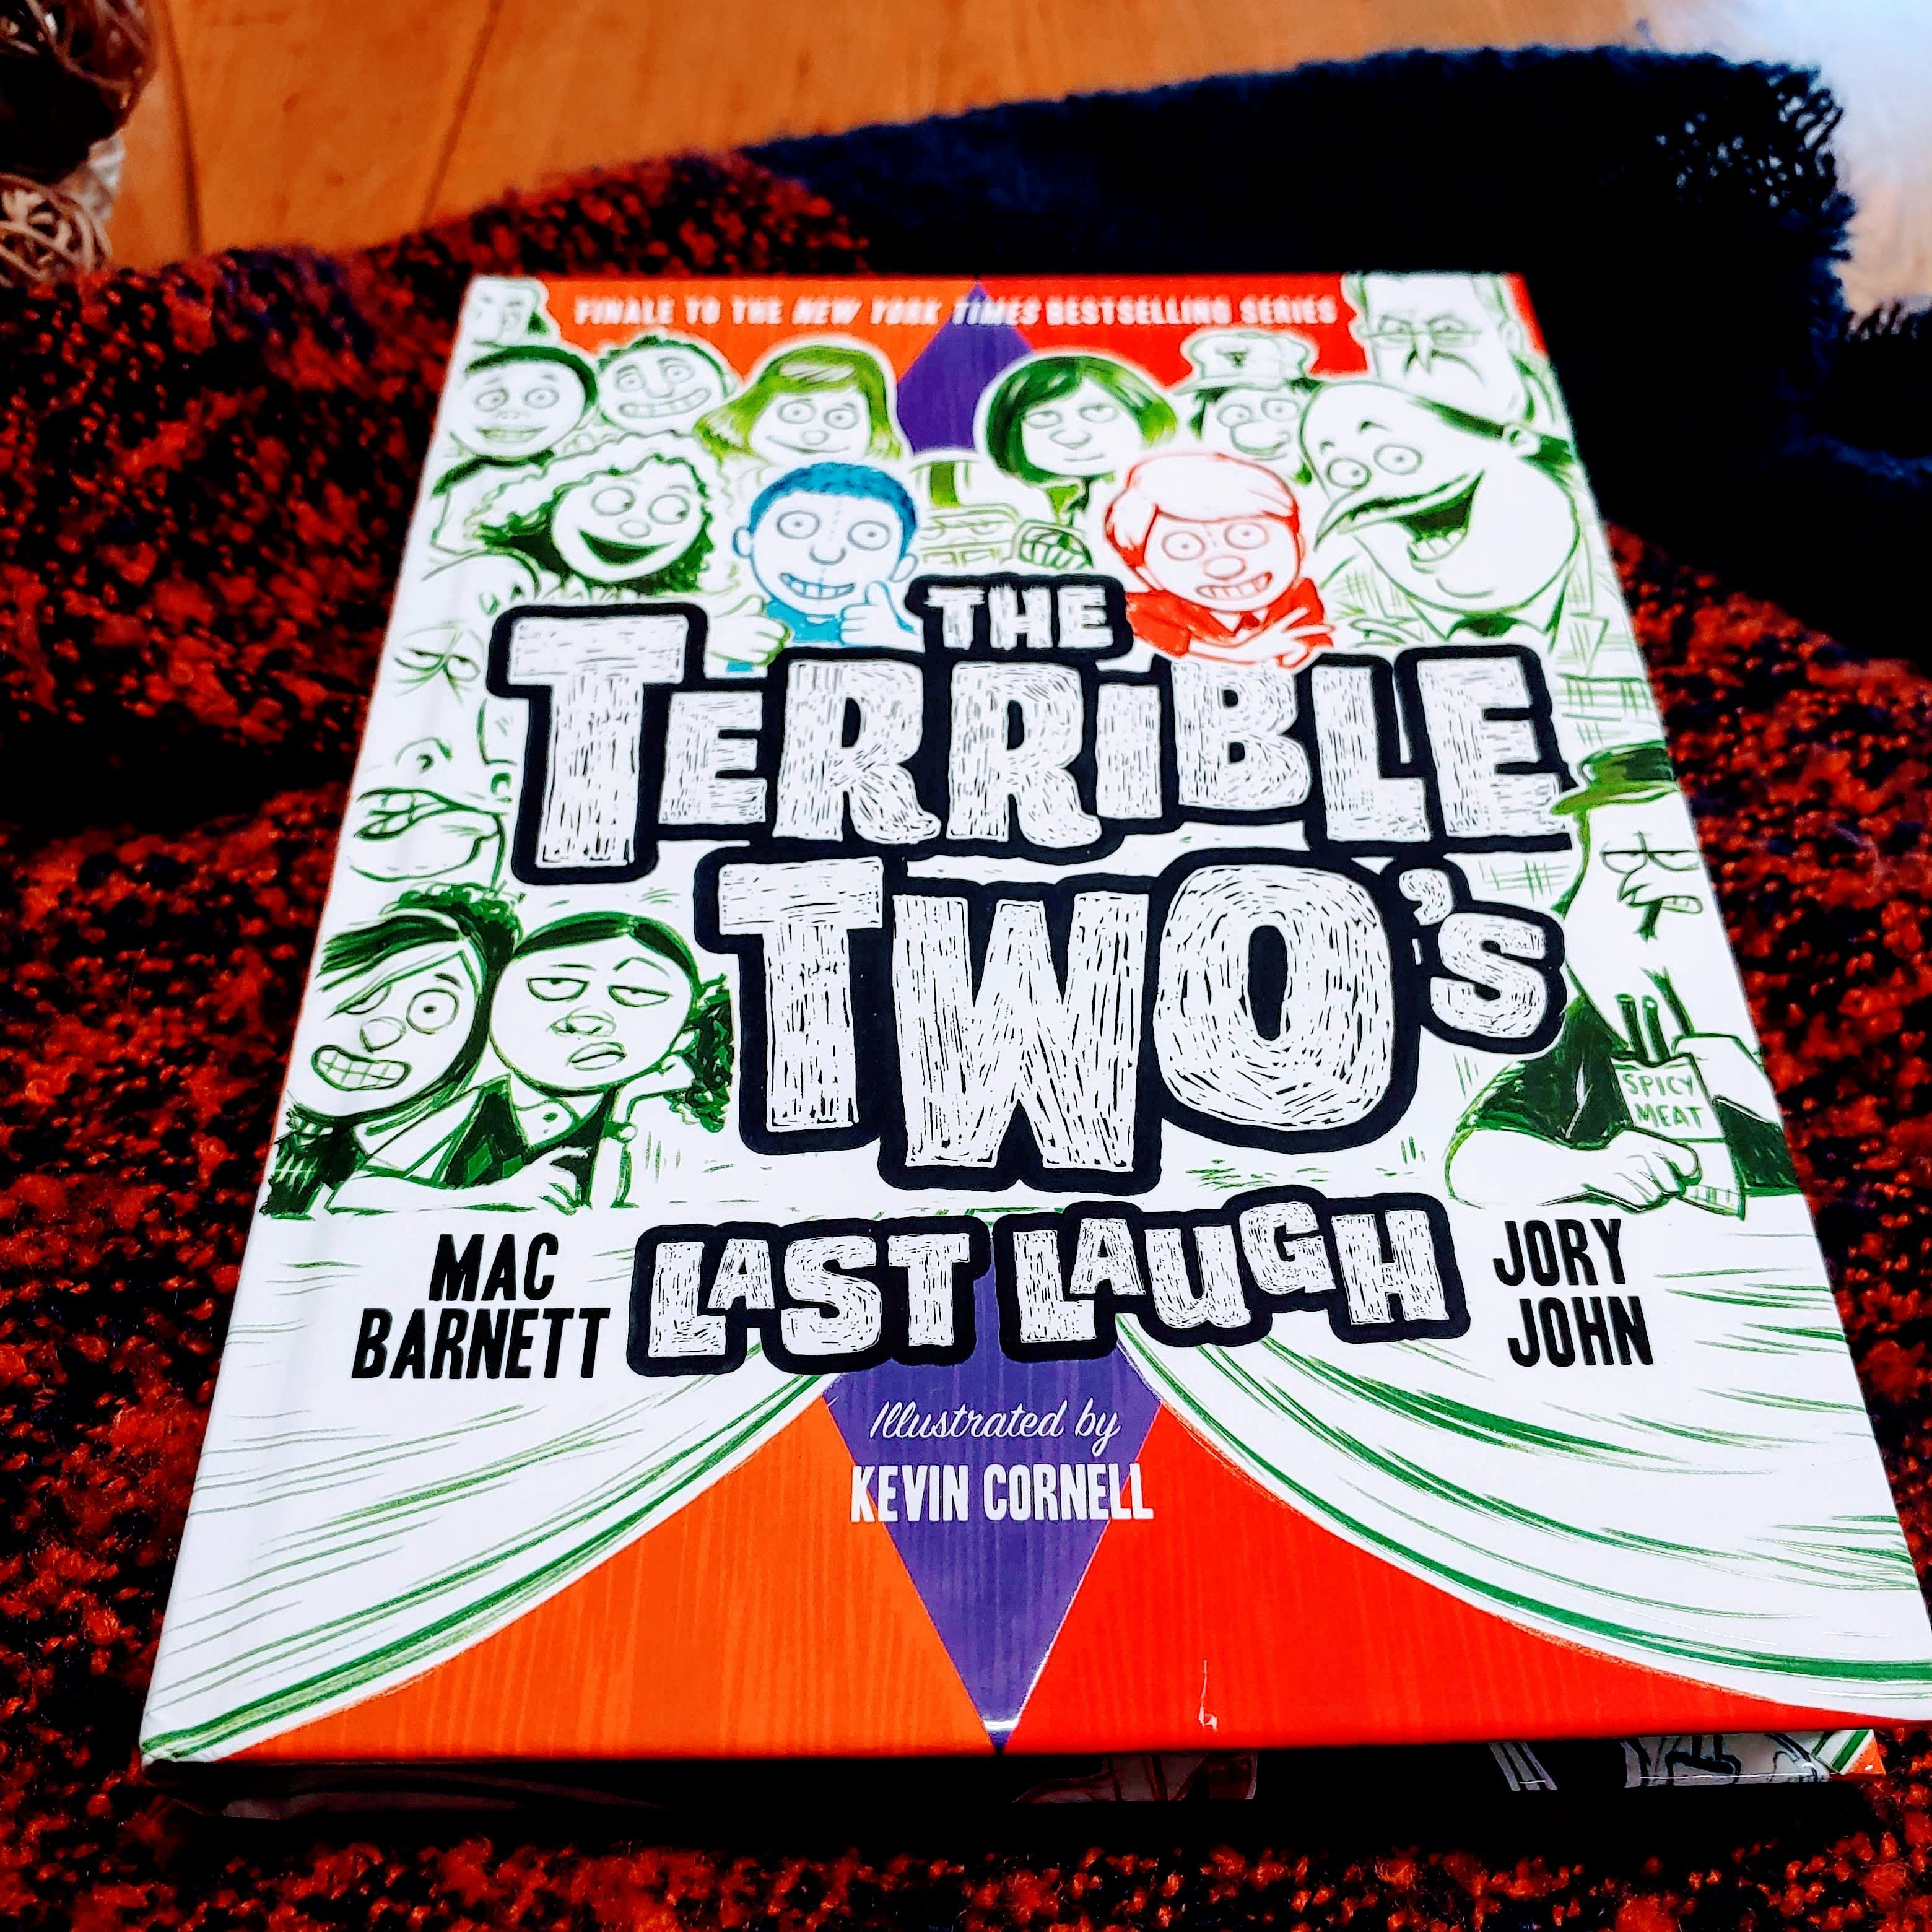 It's the fourth book in the Terrible Two series by Mac